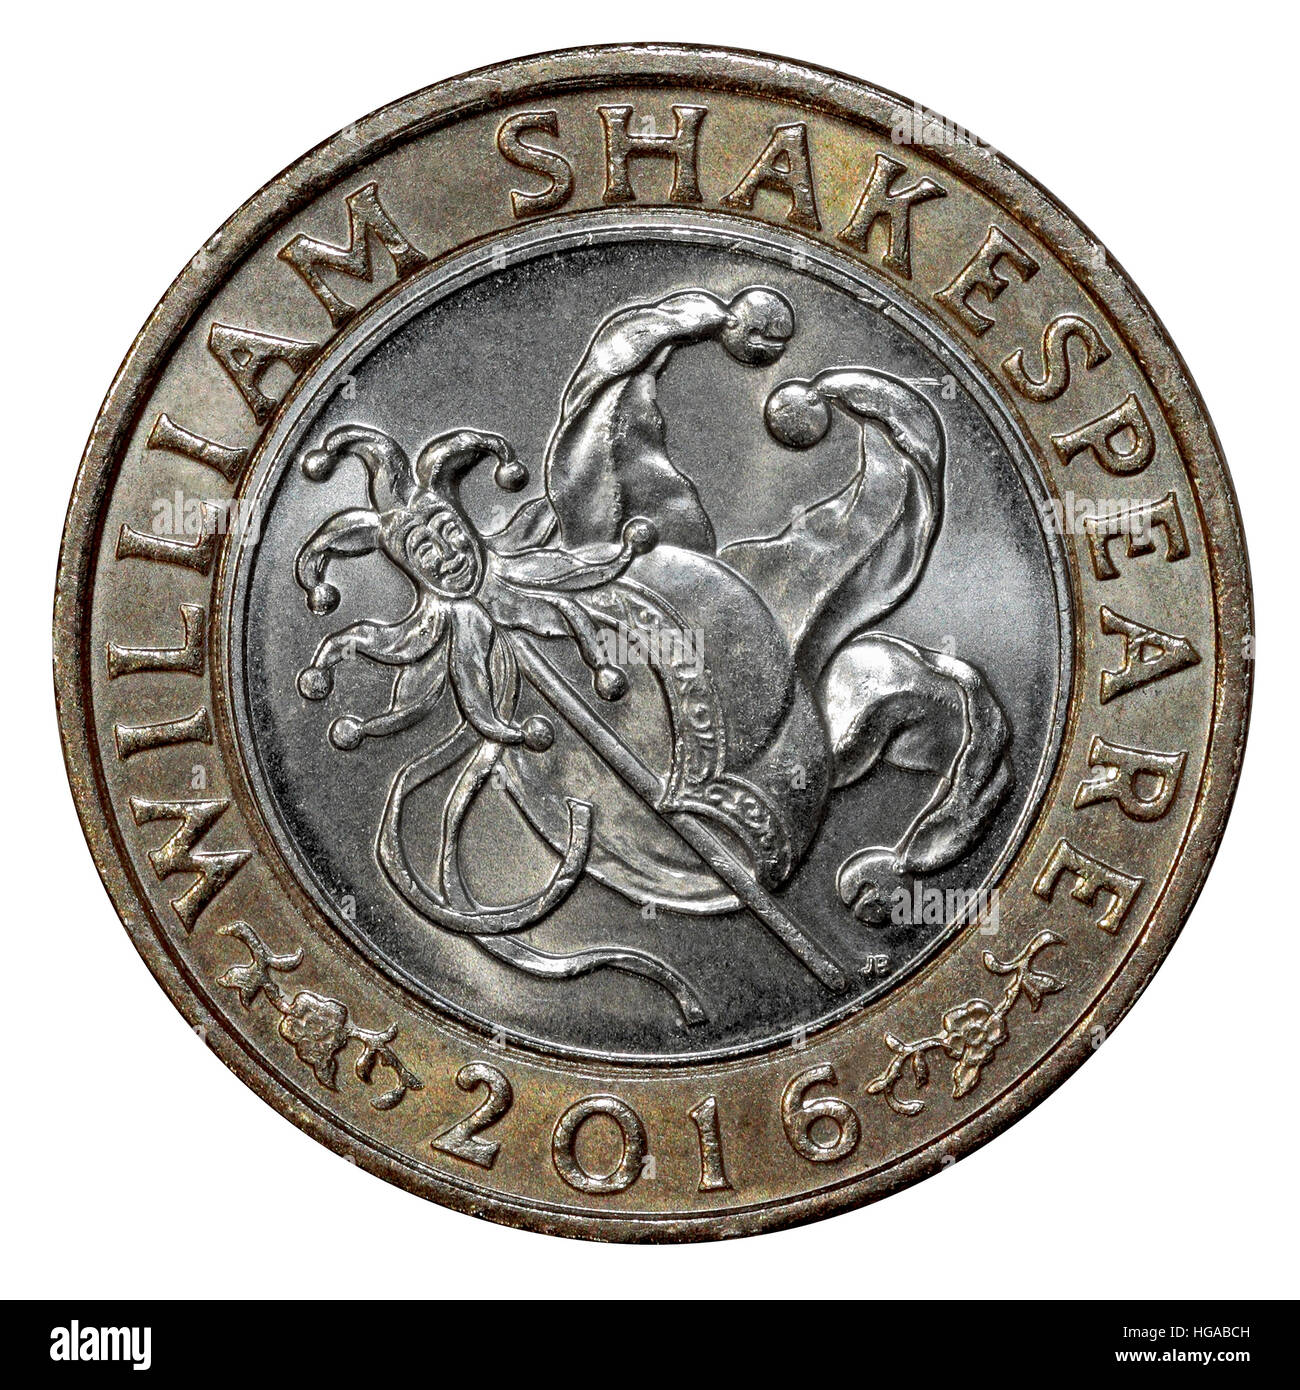 A William Shakespeare commemorative issue 2016 £2 Coin tails side jester - Stock Image